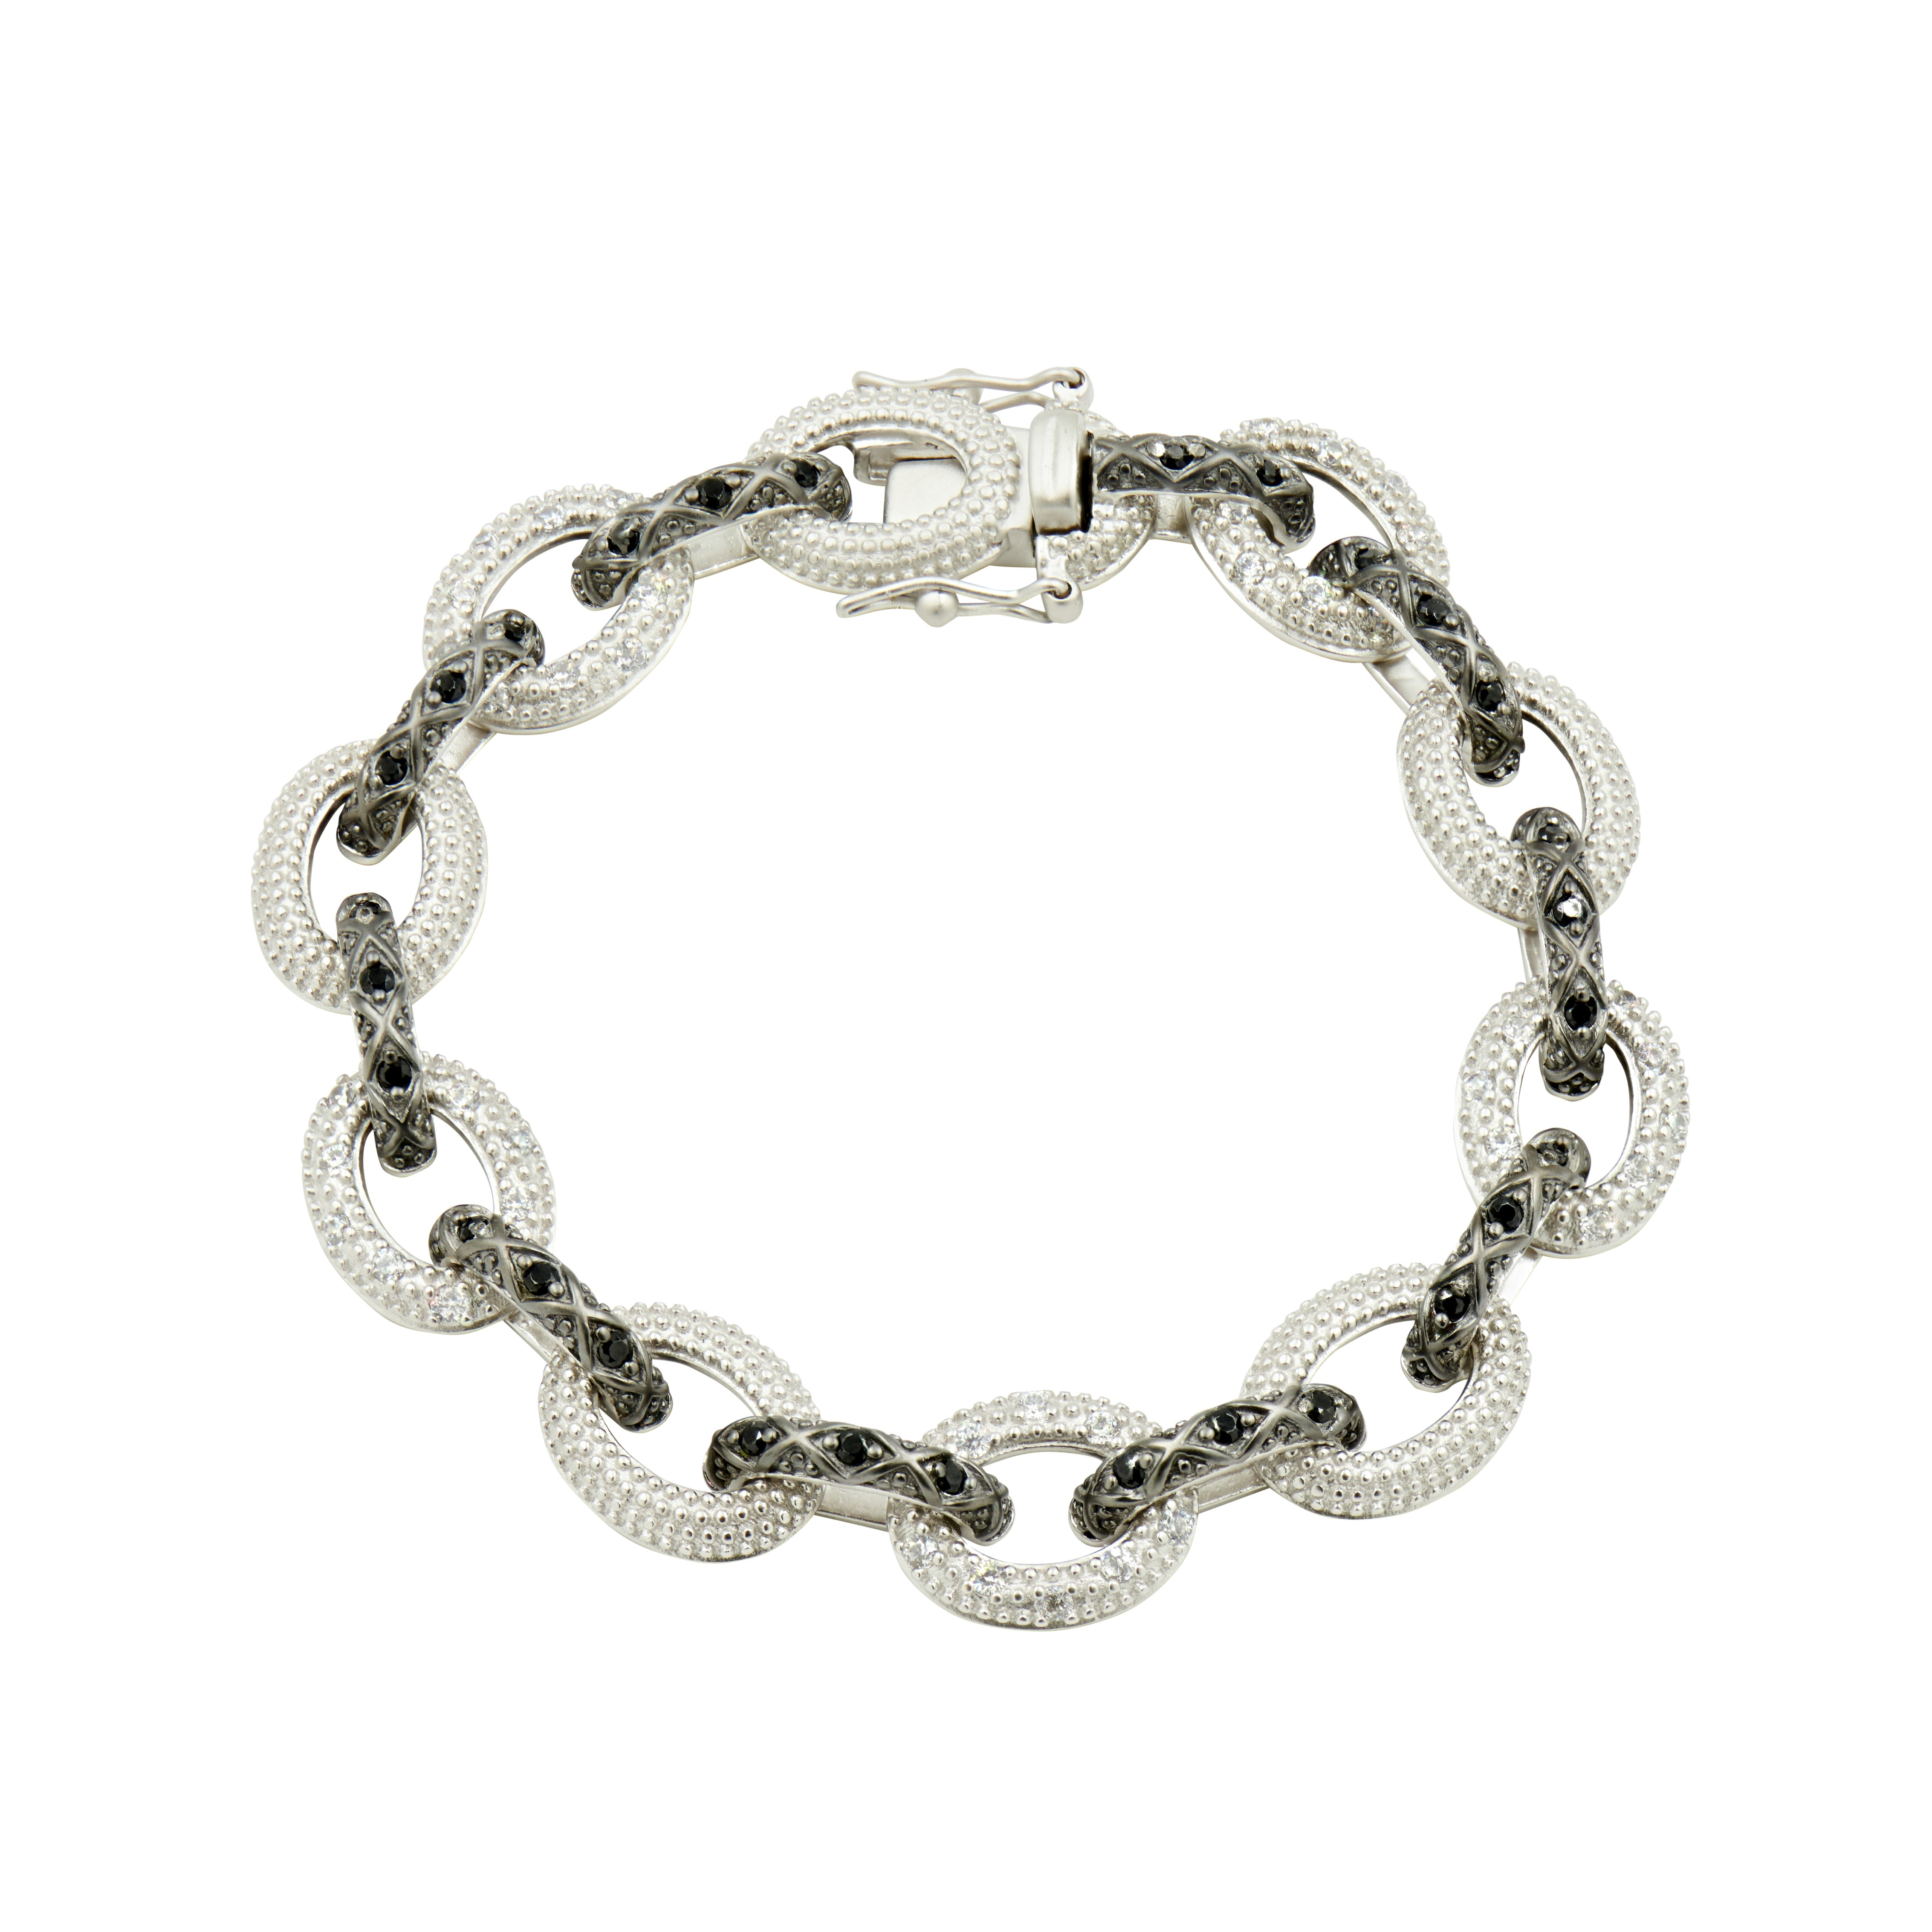 INDUSTRIAL FINISH ALTERNATING PAVE LARGE LINK BRACELET